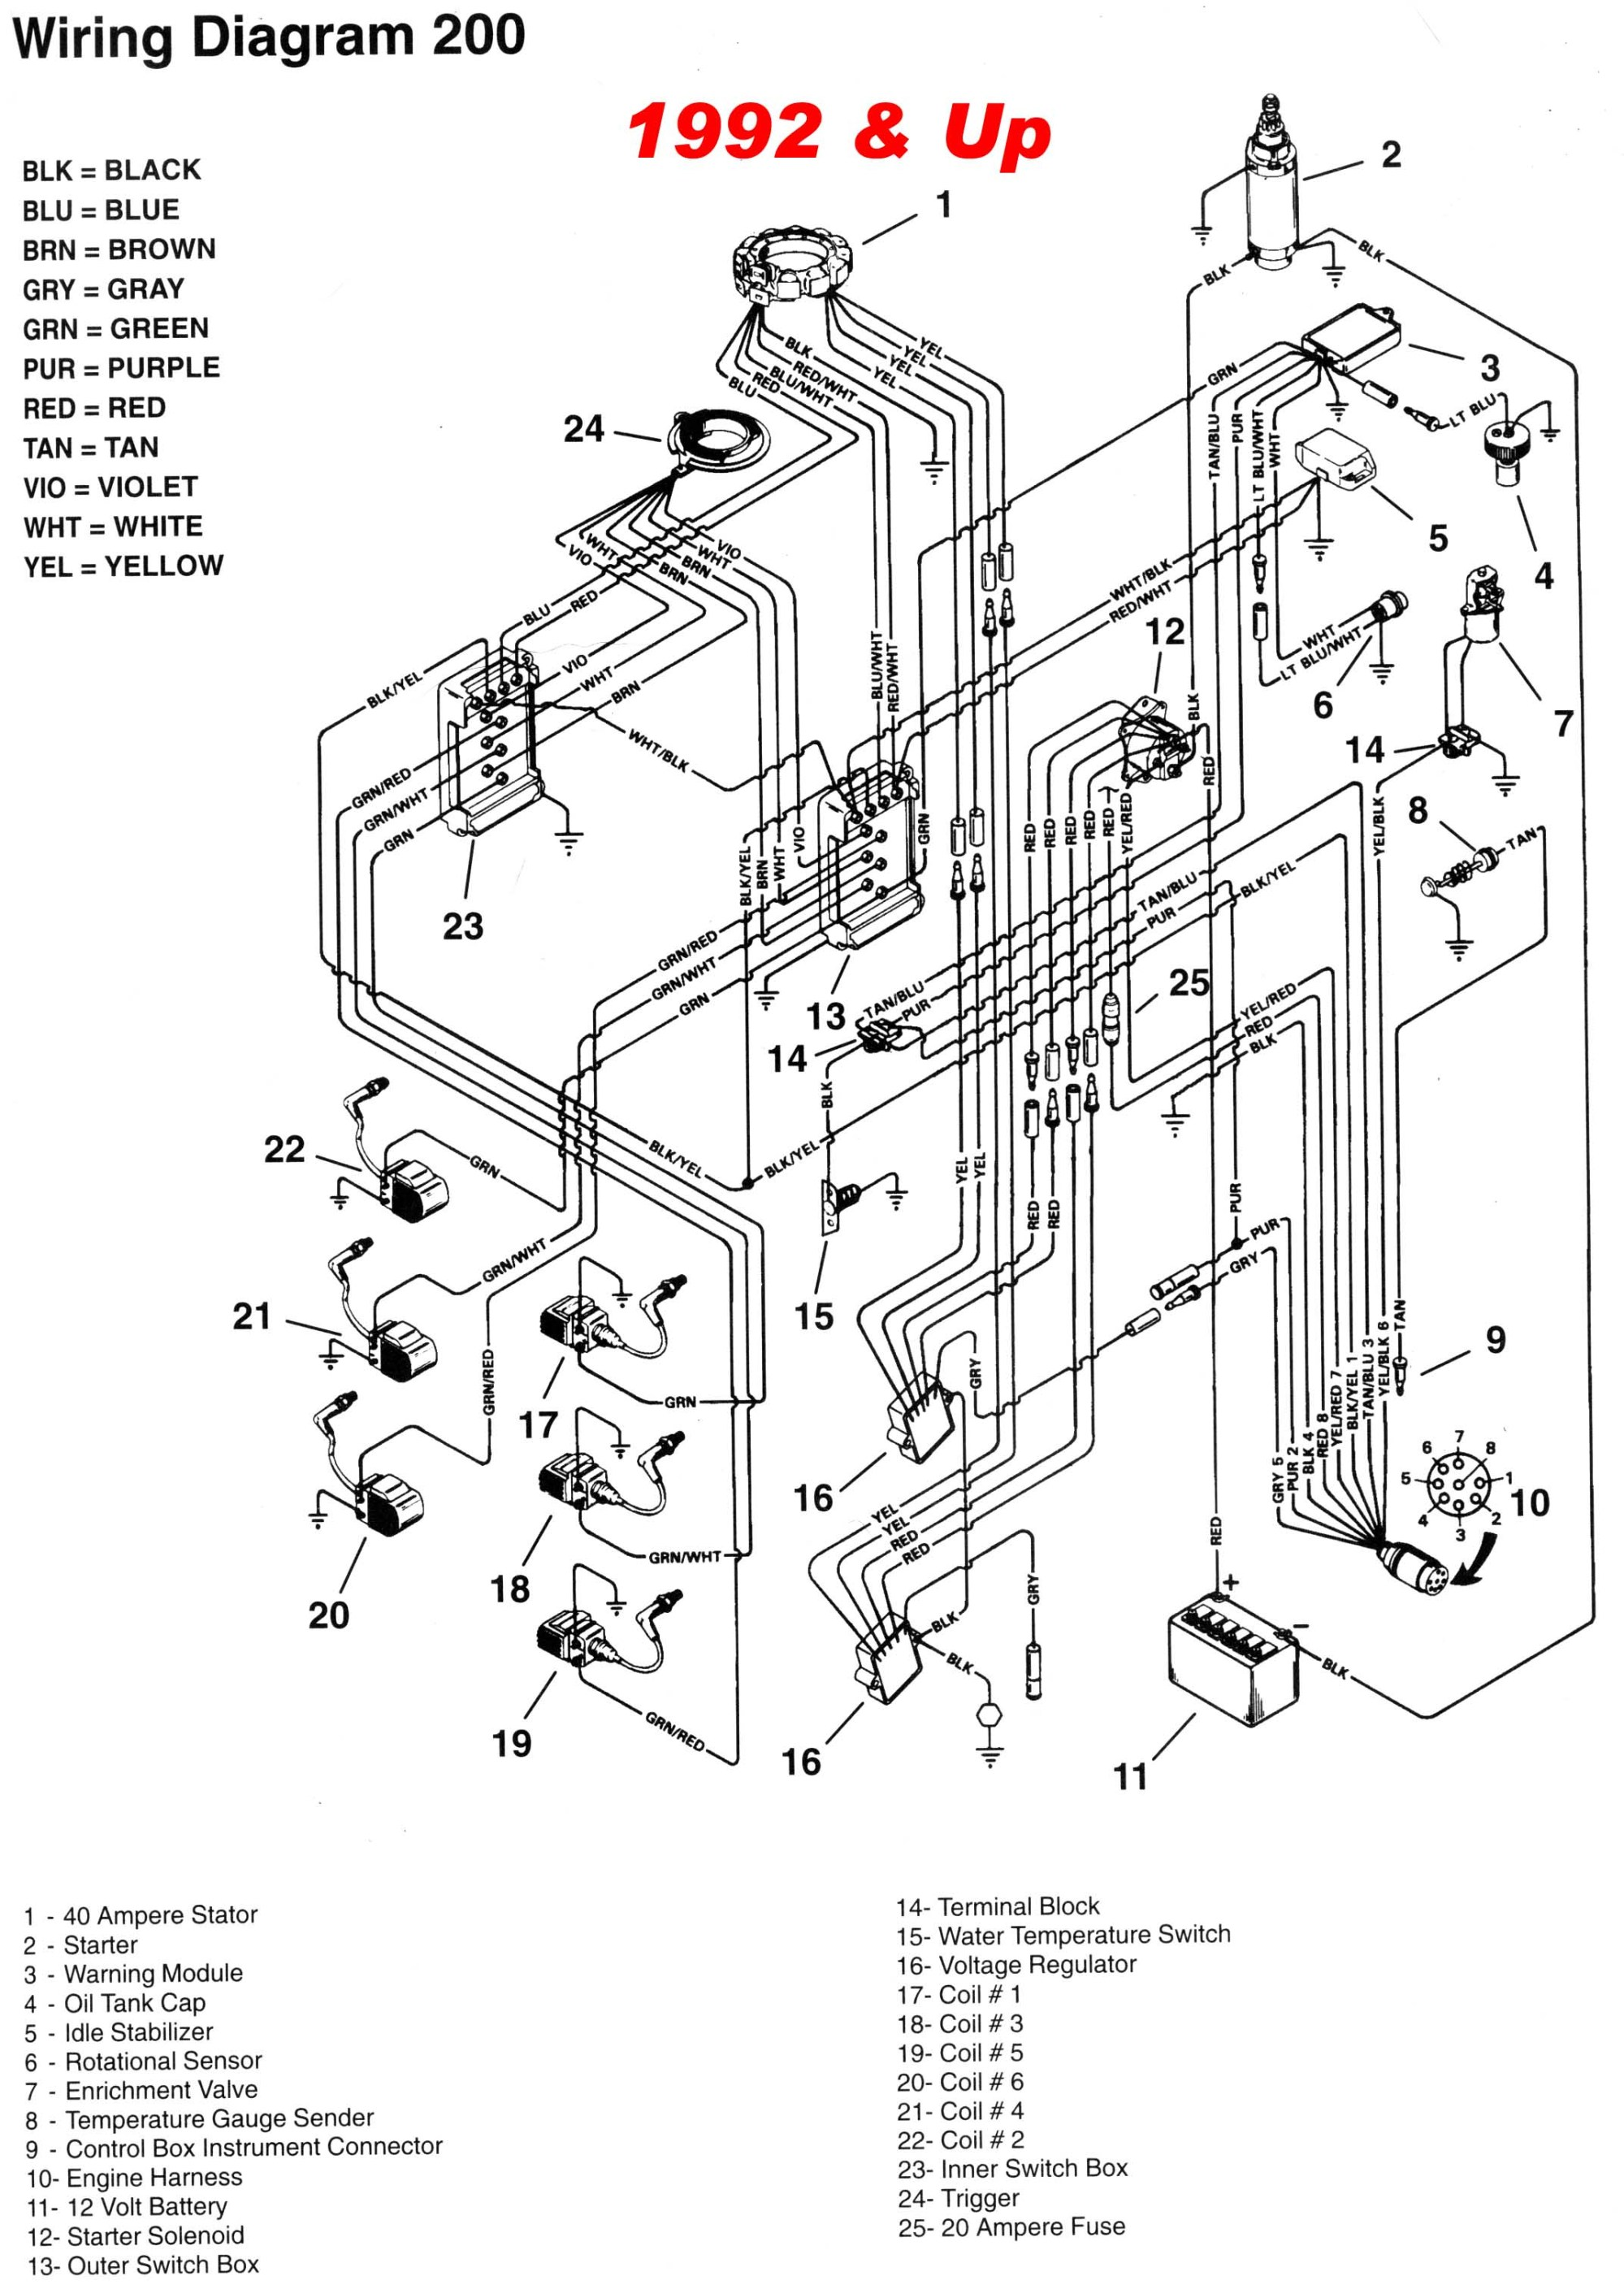 hight resolution of 200 hp mercury outboard wiring diagram free download wiring mix 90 mercury outboard wiring diagram free